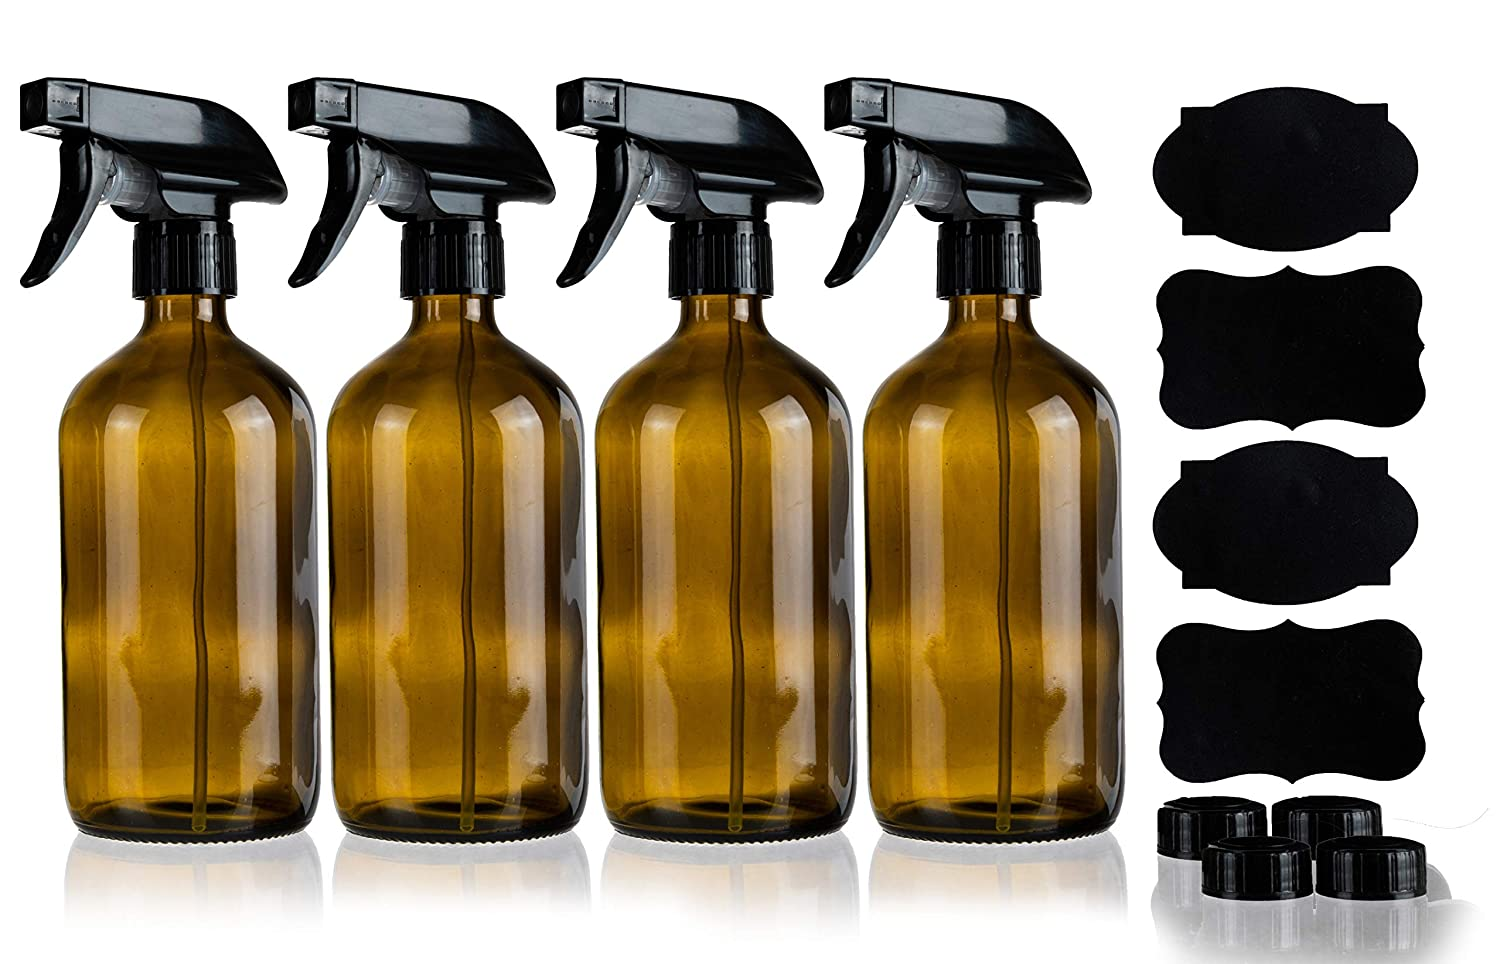 Amazon.com: Homeries Botellas de spray de ámbar vacías, 16 ...